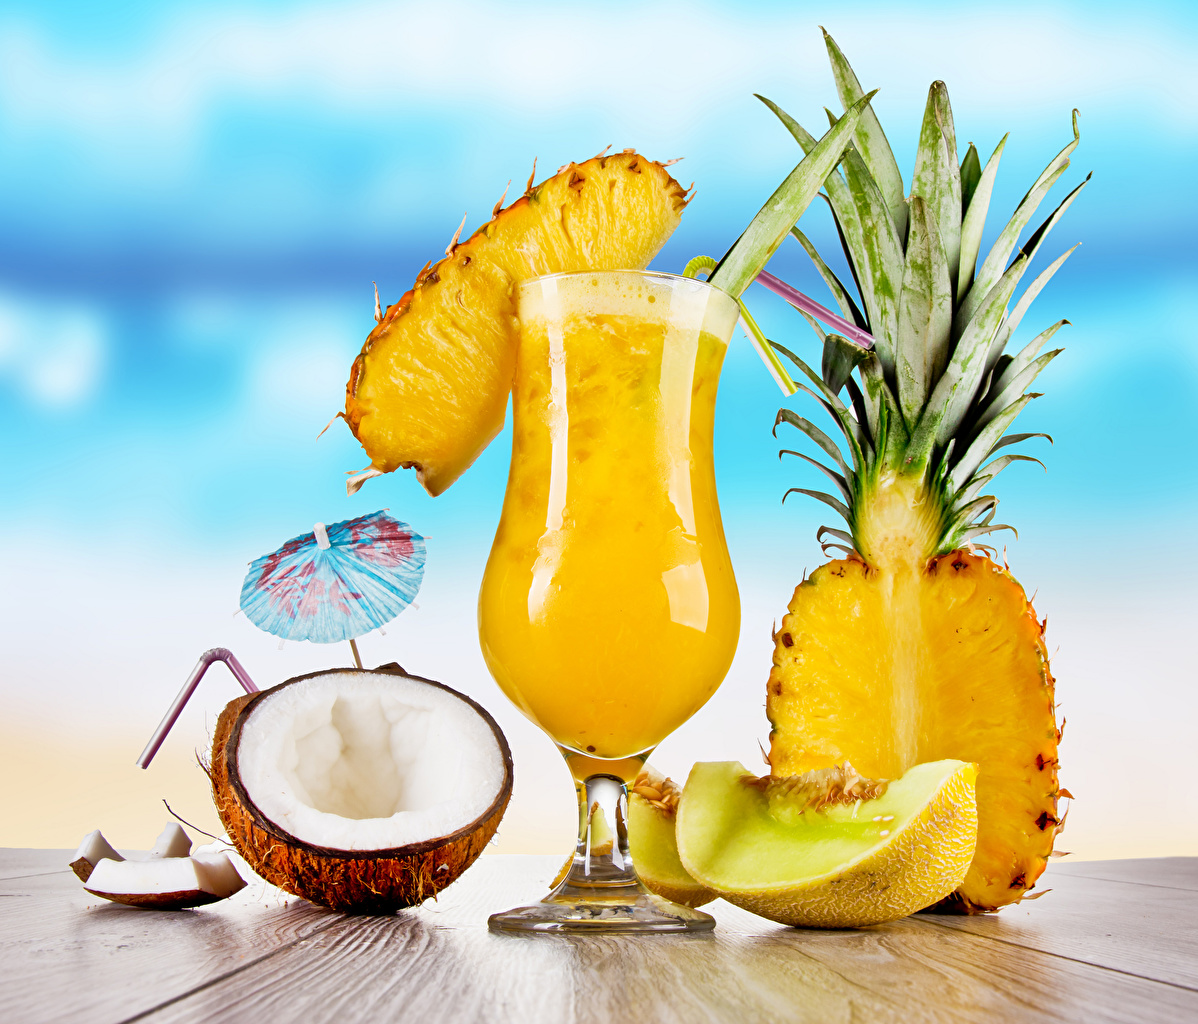 Image Melons Coconuts Pineapples Food Umbrella Stemware Cocktail parasol Mixed drink